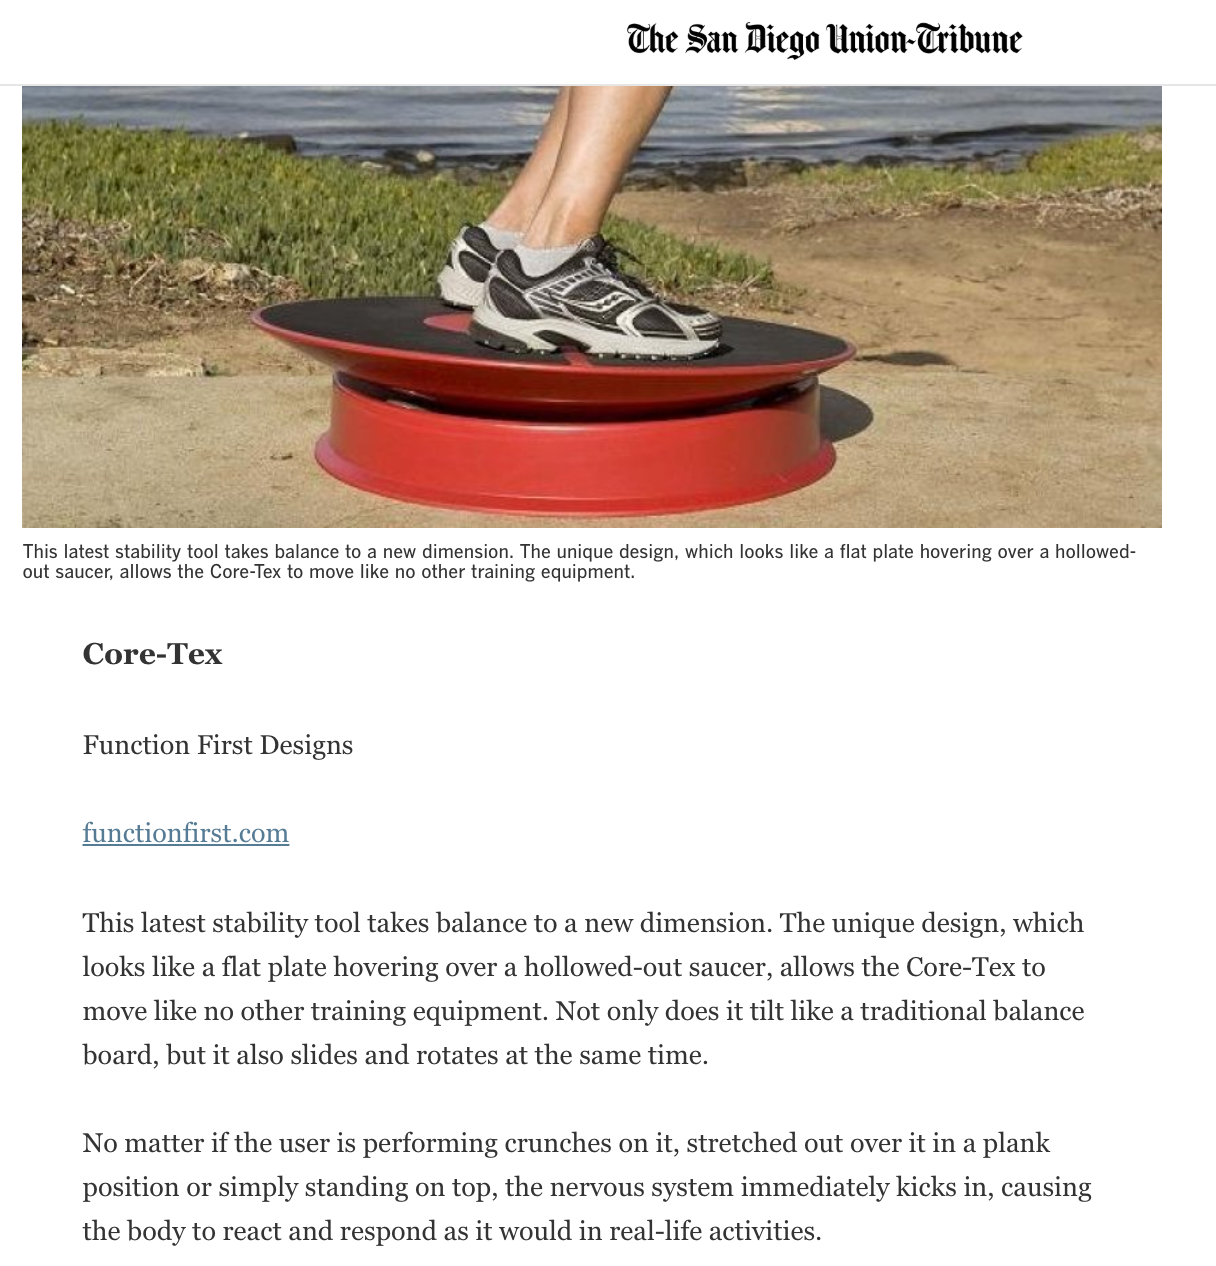 SAN DIEGO UNION TRIBUNE APRIL 6, 2010: Equipment adds muscle to cross-training workouts